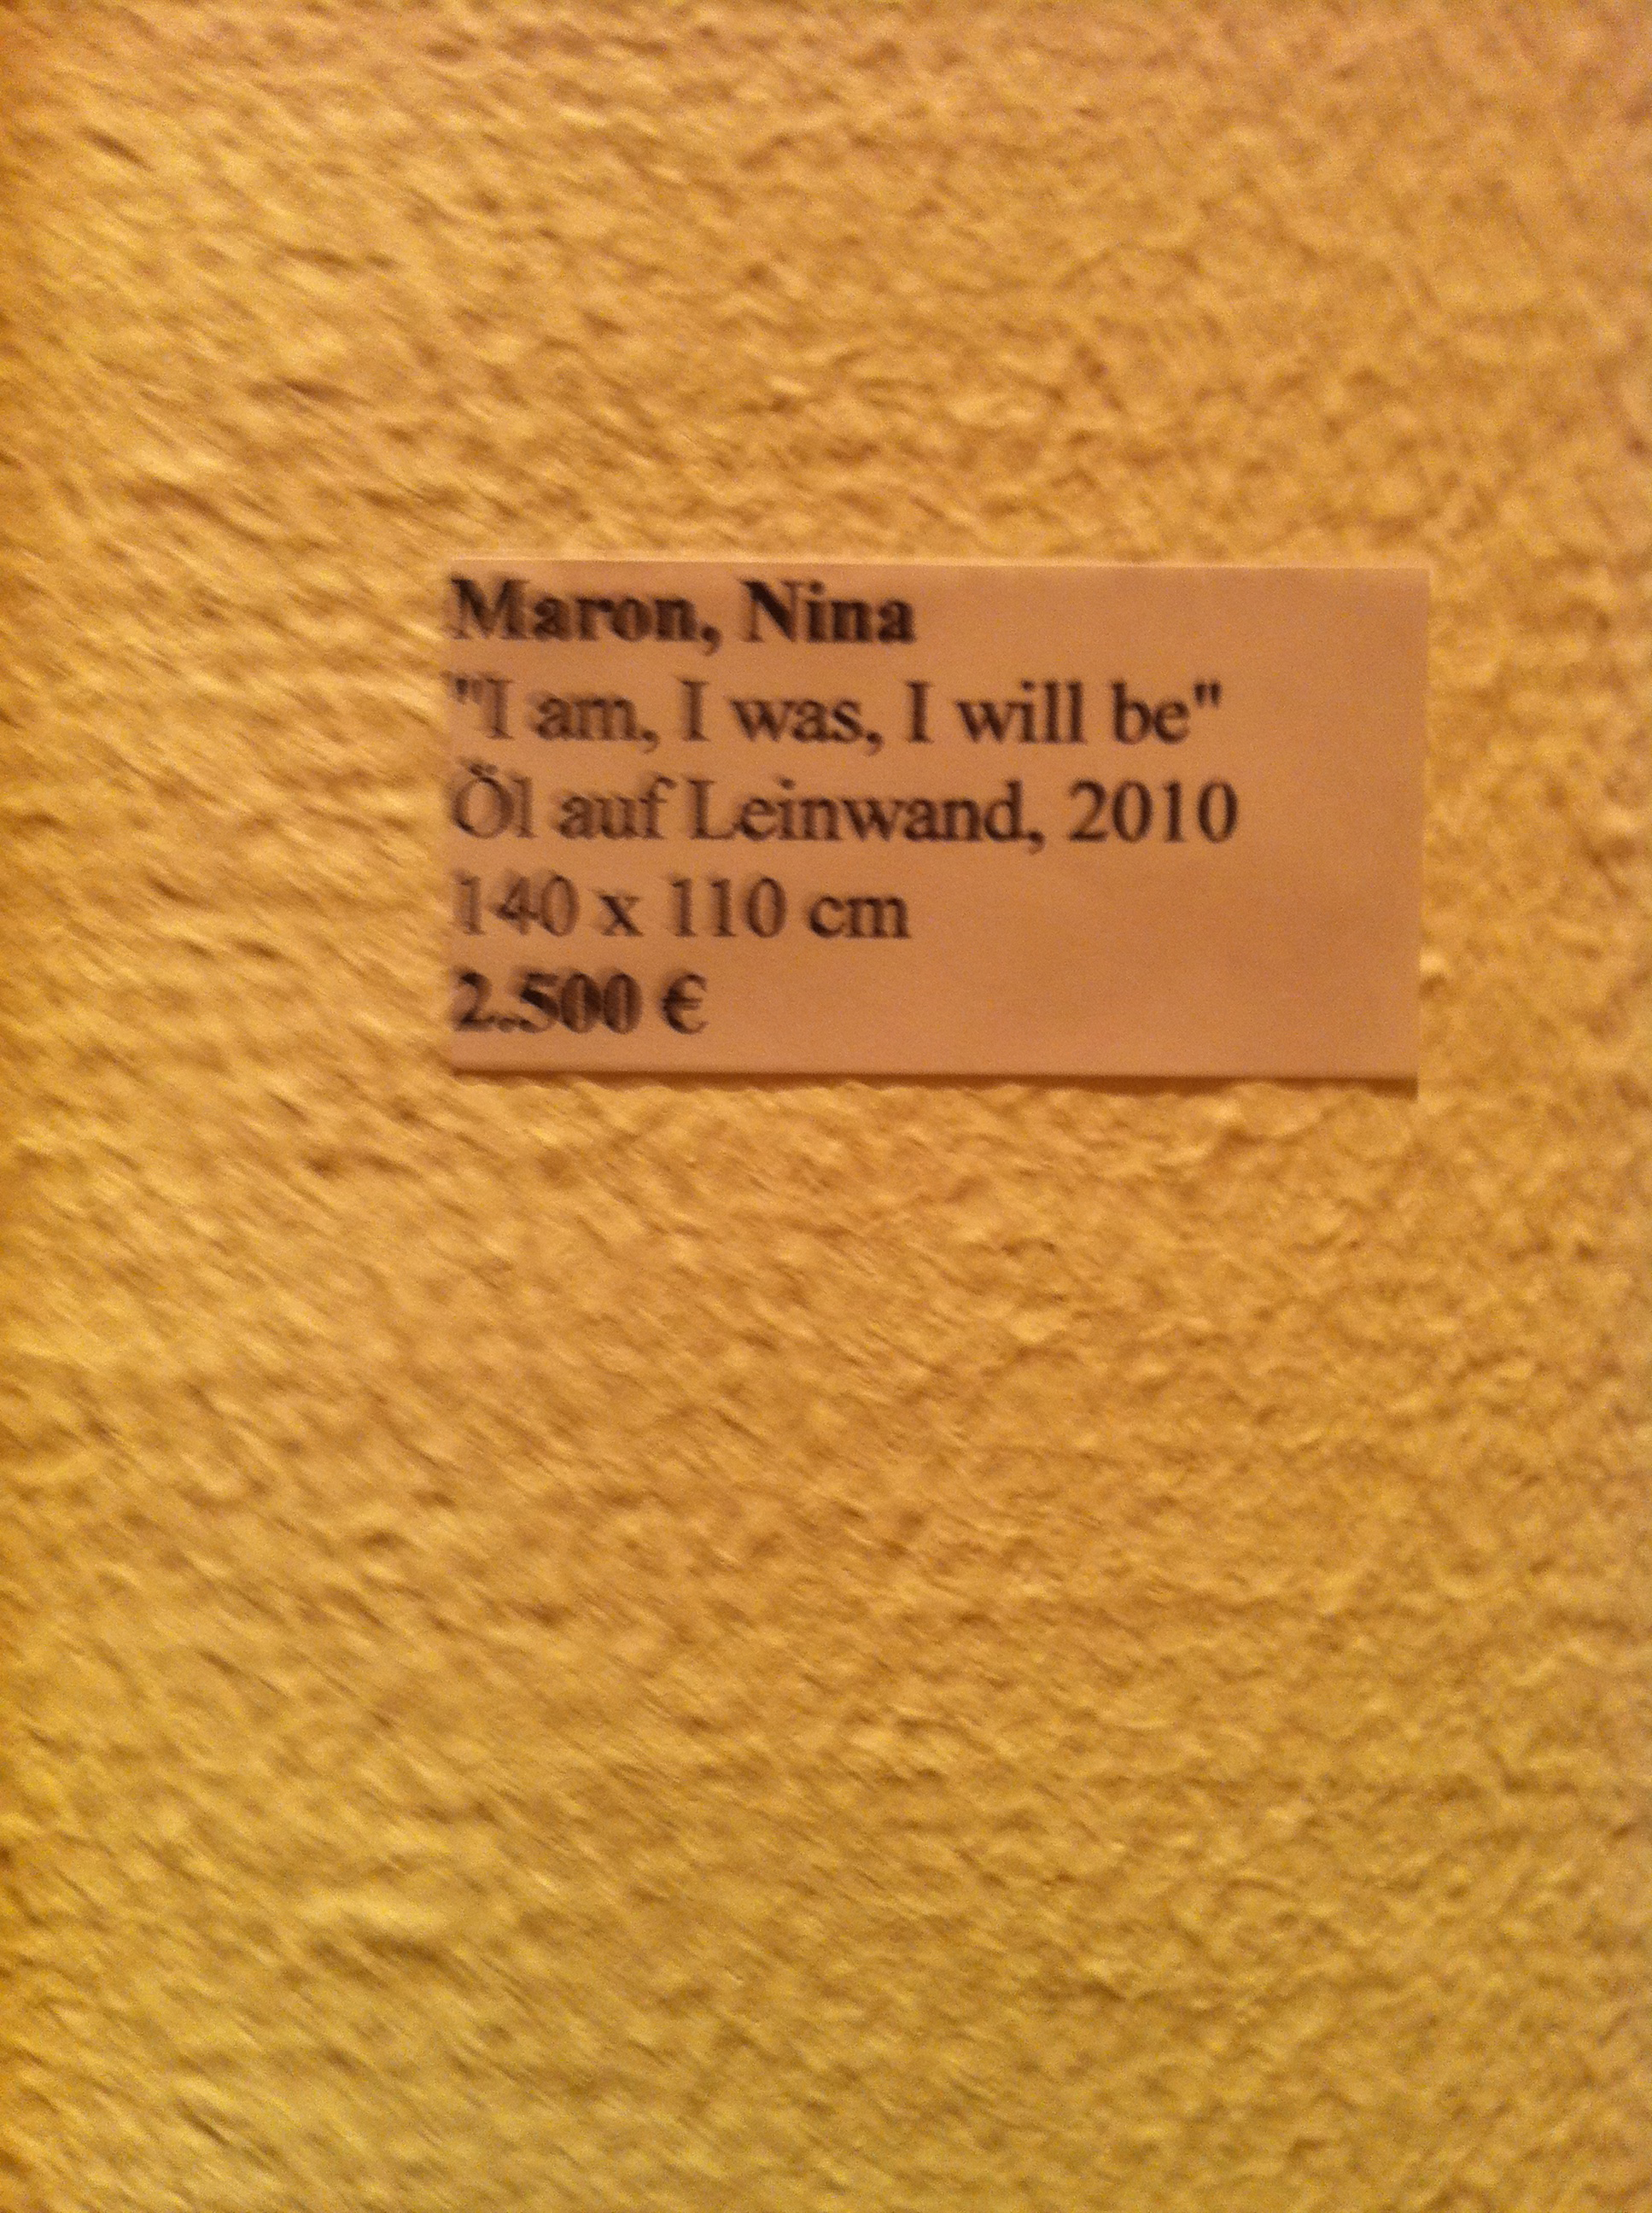 Maron, Nina_I am, I was, I will be_tag